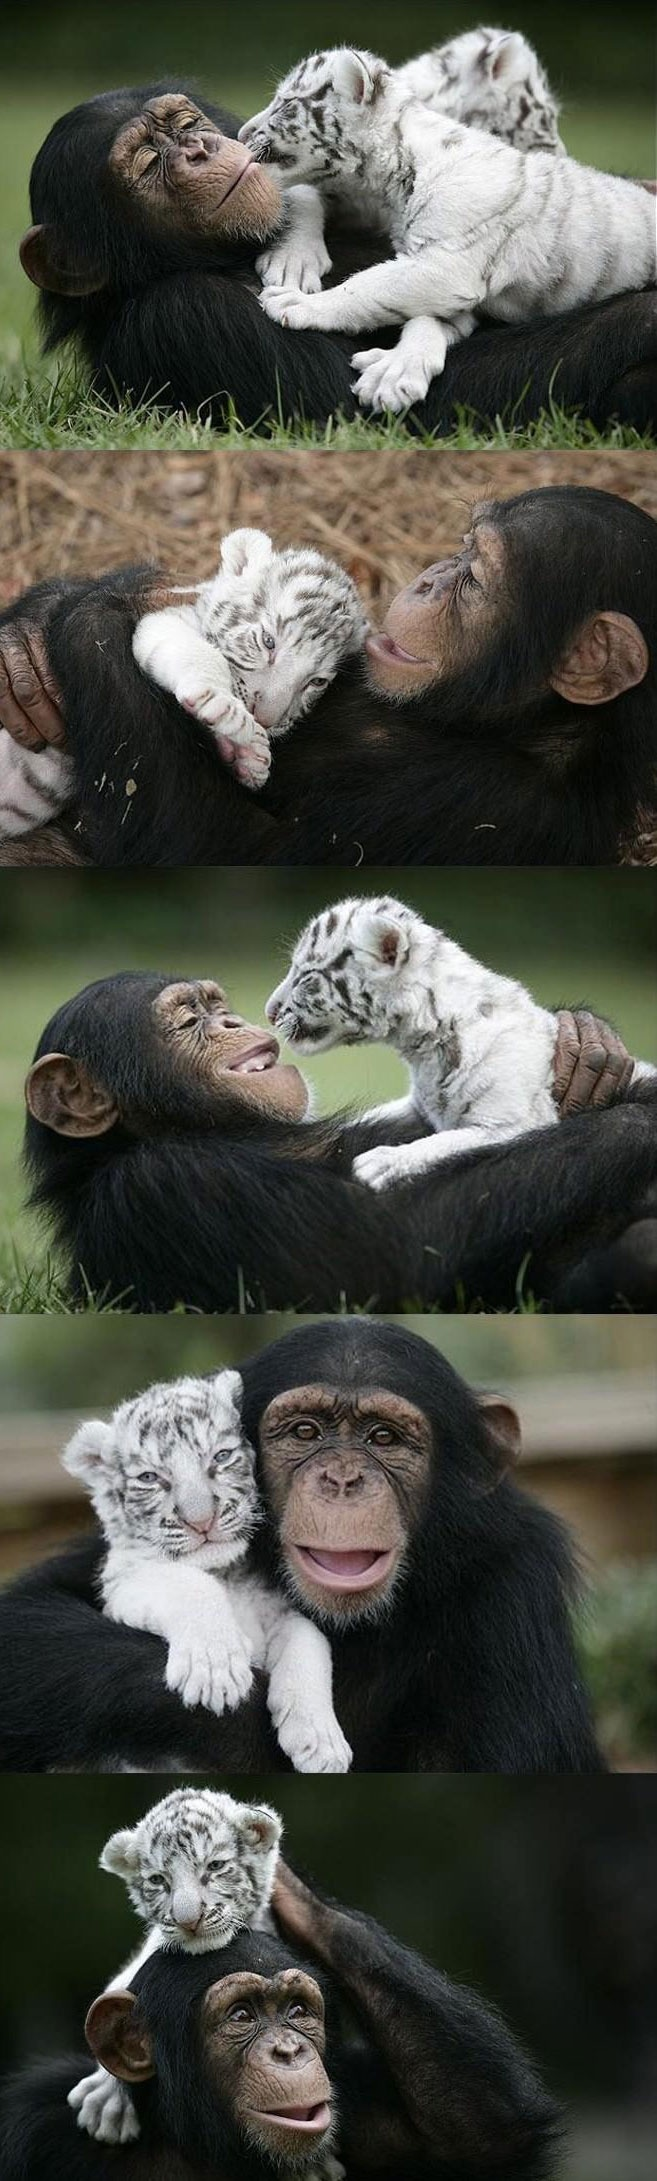 Monkey and tiger- so cute!